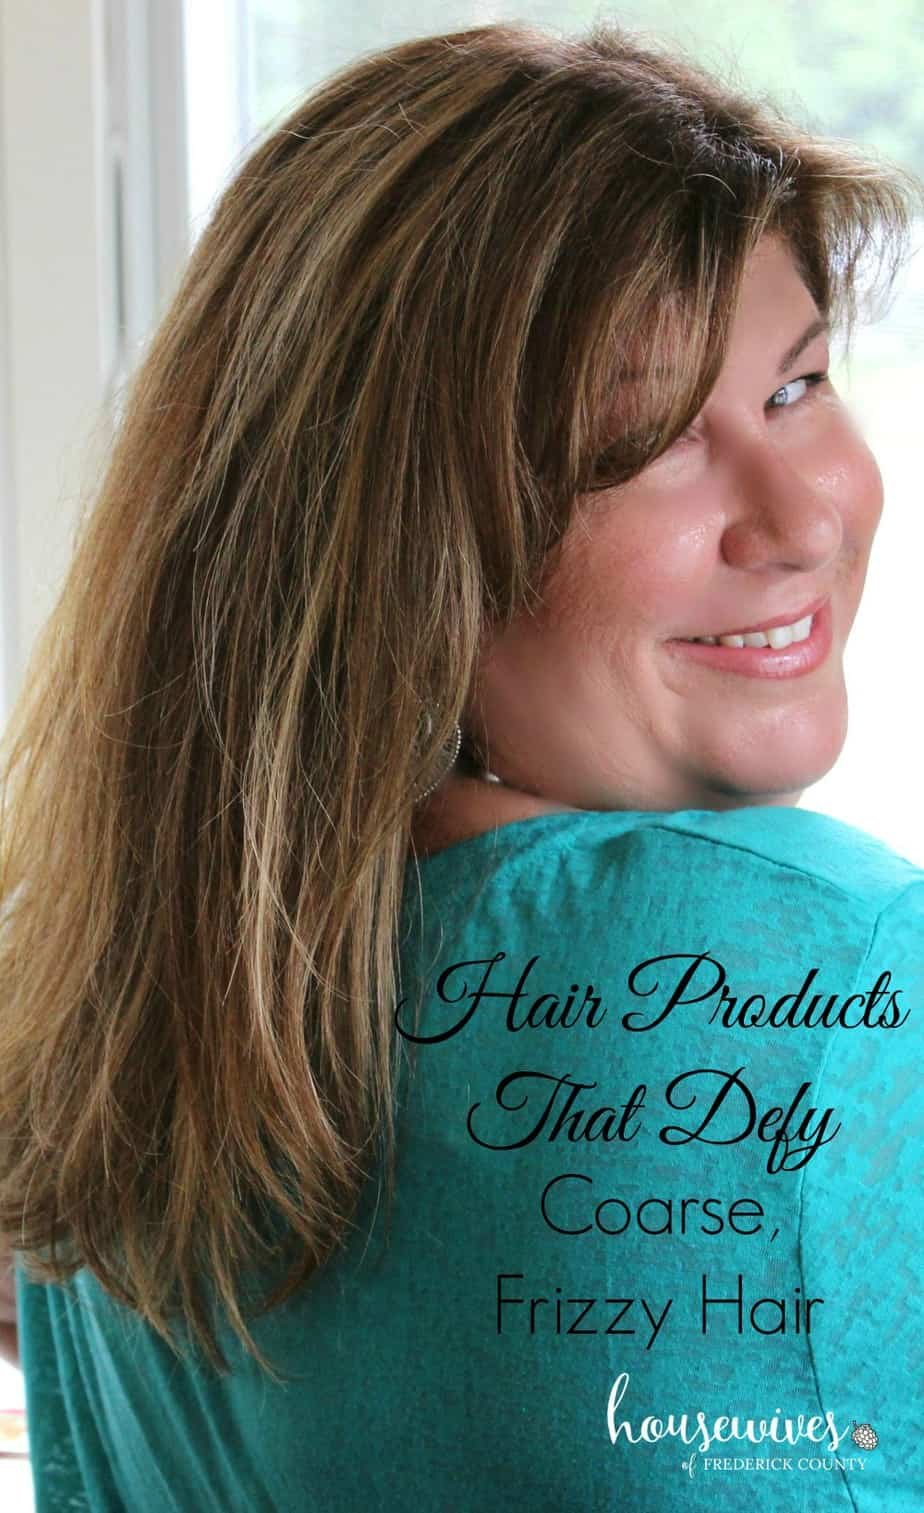 Hair Products That Defy Coarse, Frizzy Hair